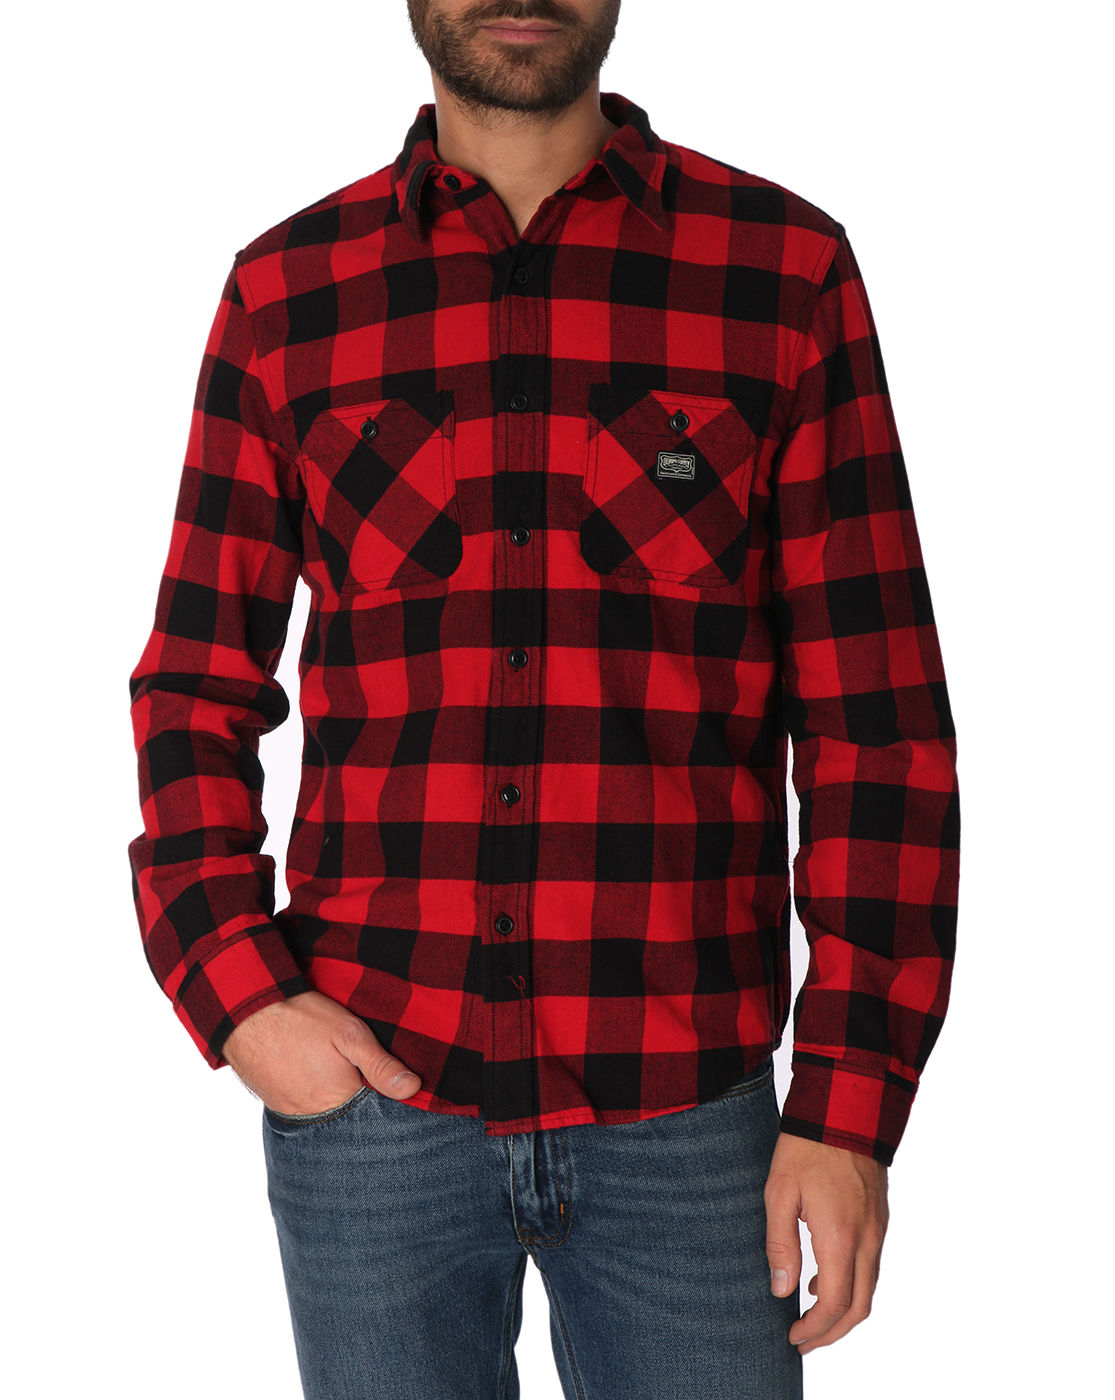 Fashion baby boys girls red black plaid check button down shirt top blouse. OCHENTA Women's Roll Up Sleeve Flannel Plaid Shirt. by OCHENTA. $ - $ $ 12 $ 18 99 Prime. FREE Shipping on eligible orders. Some sizes/colors are Prime eligible. out of 5 stars 2, See Details.